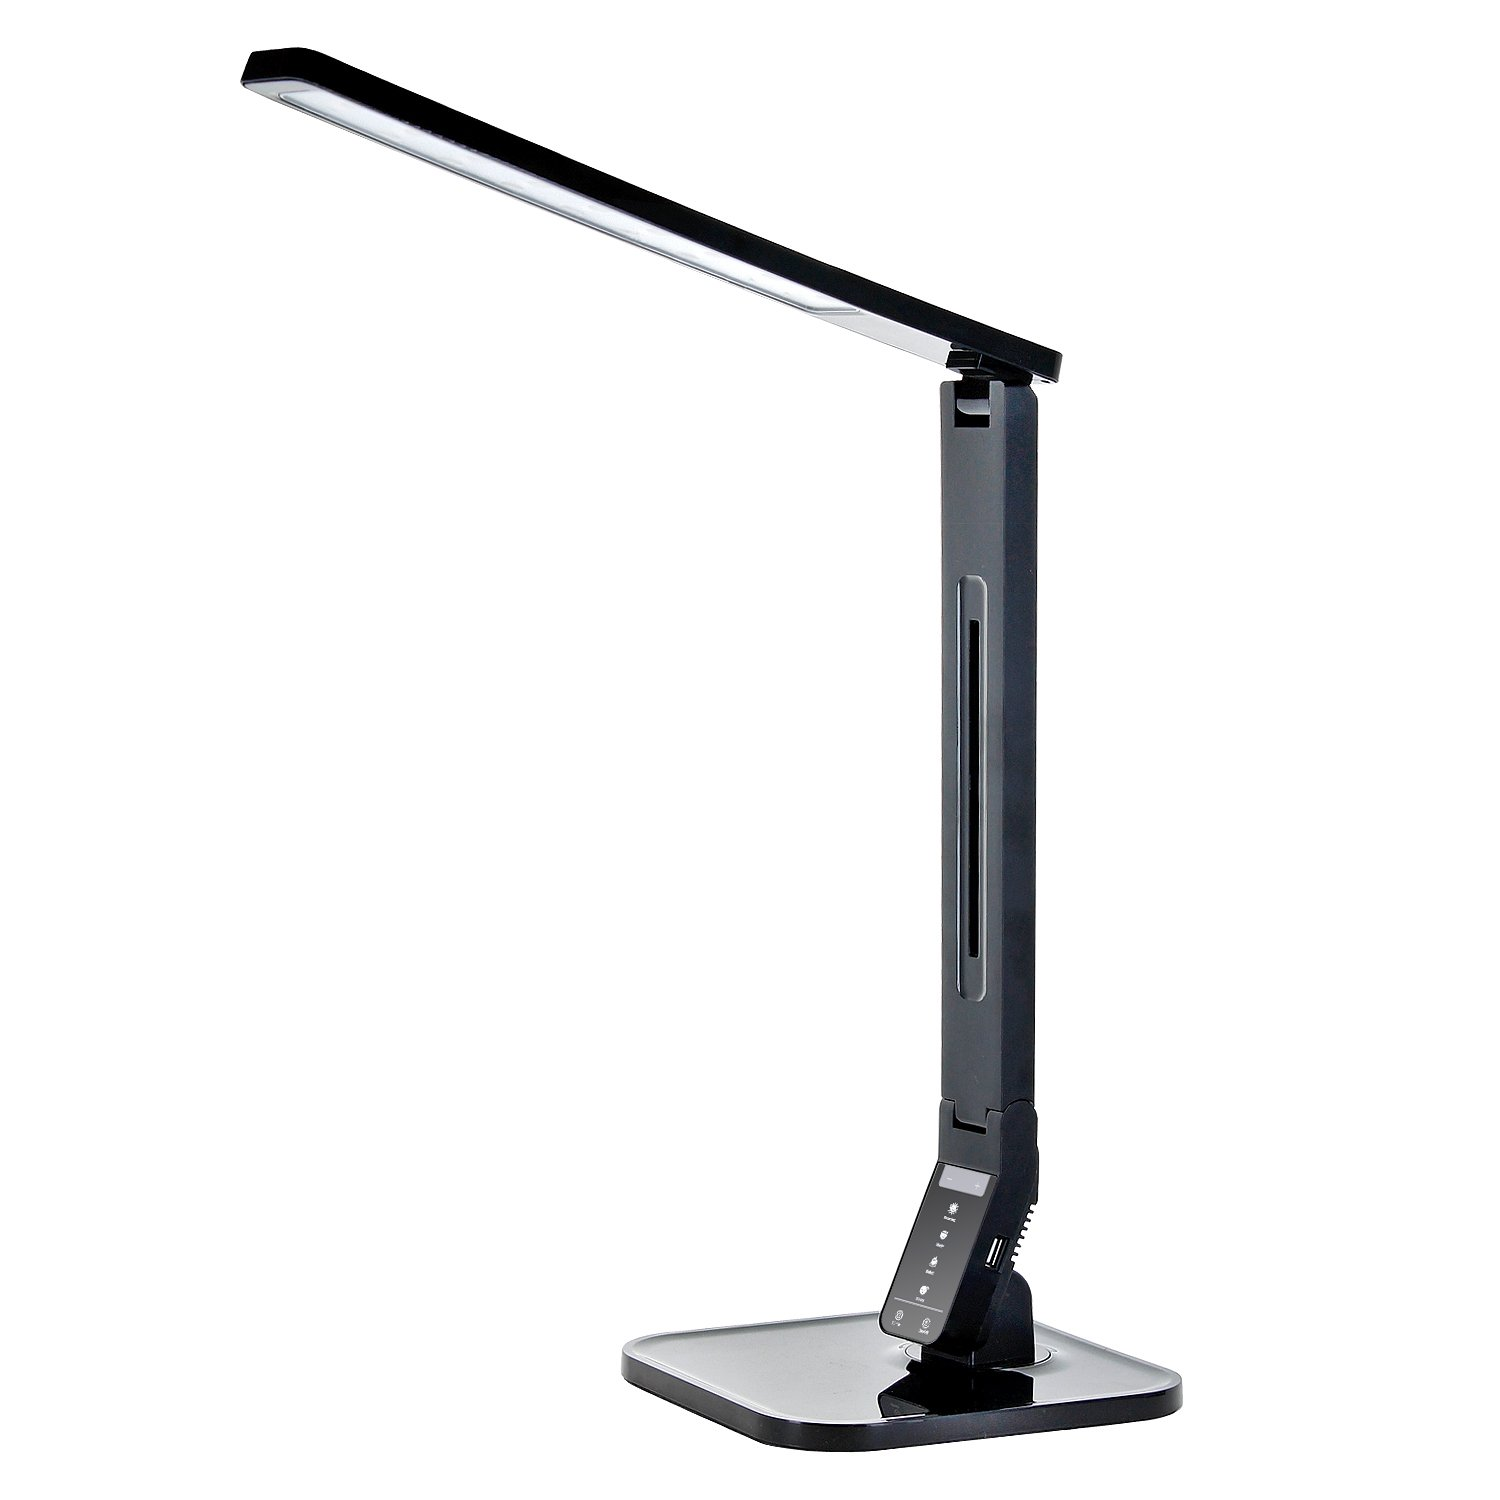 Tenergy 11W Dimmable Desk Lamp with USB Charging Port, LED Adjustable Lighting for Reading, 5 Brightness Levels 4 Light Colors Table Light